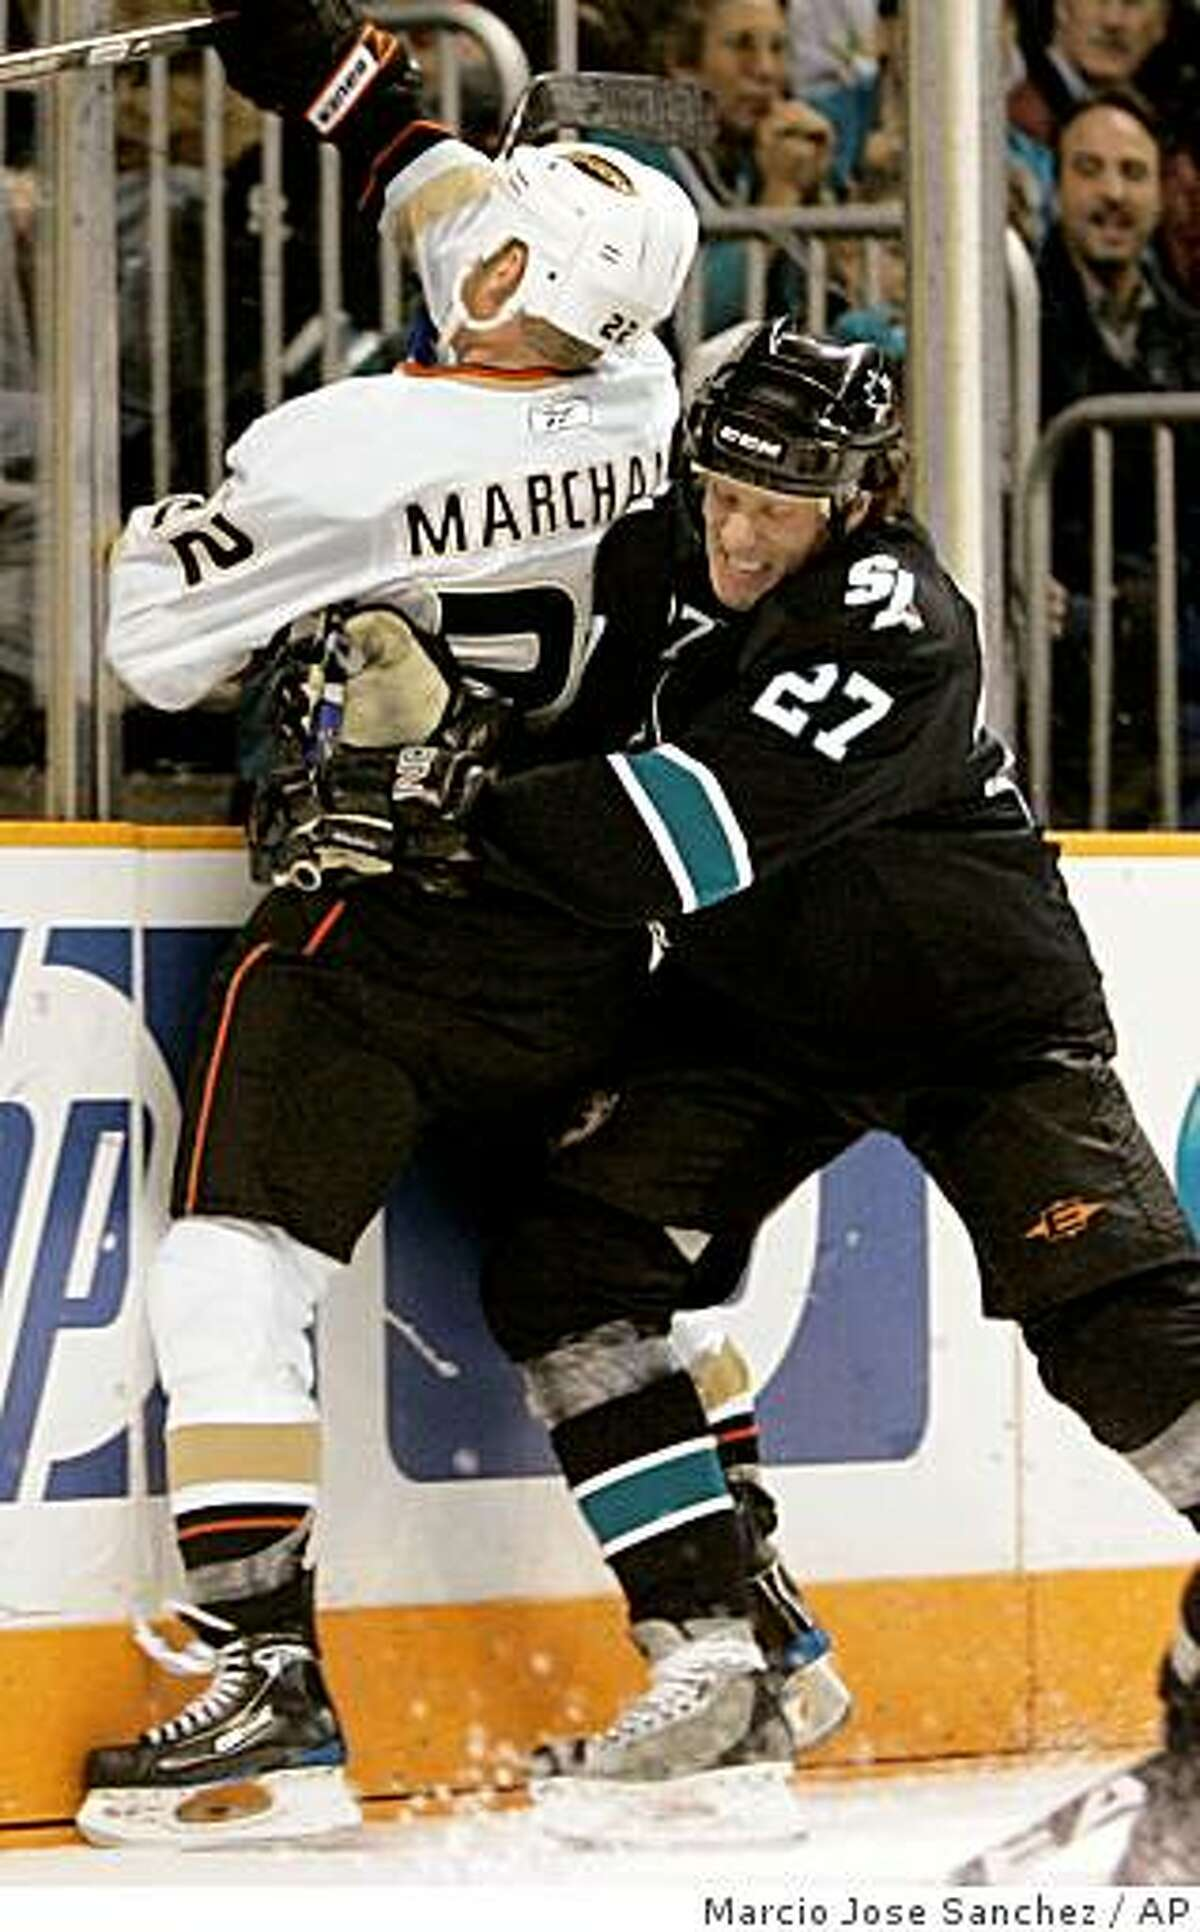 San Jose Sharks center Jeremy Roenick, right, checks Anaheim Ducks center Todd Marchant against the boards during the second period of an NHL hockey game in San Jose, Calif. on Thursday, Dec. 11, 2008. (AP Photo/Marcio Jose Sanchez)